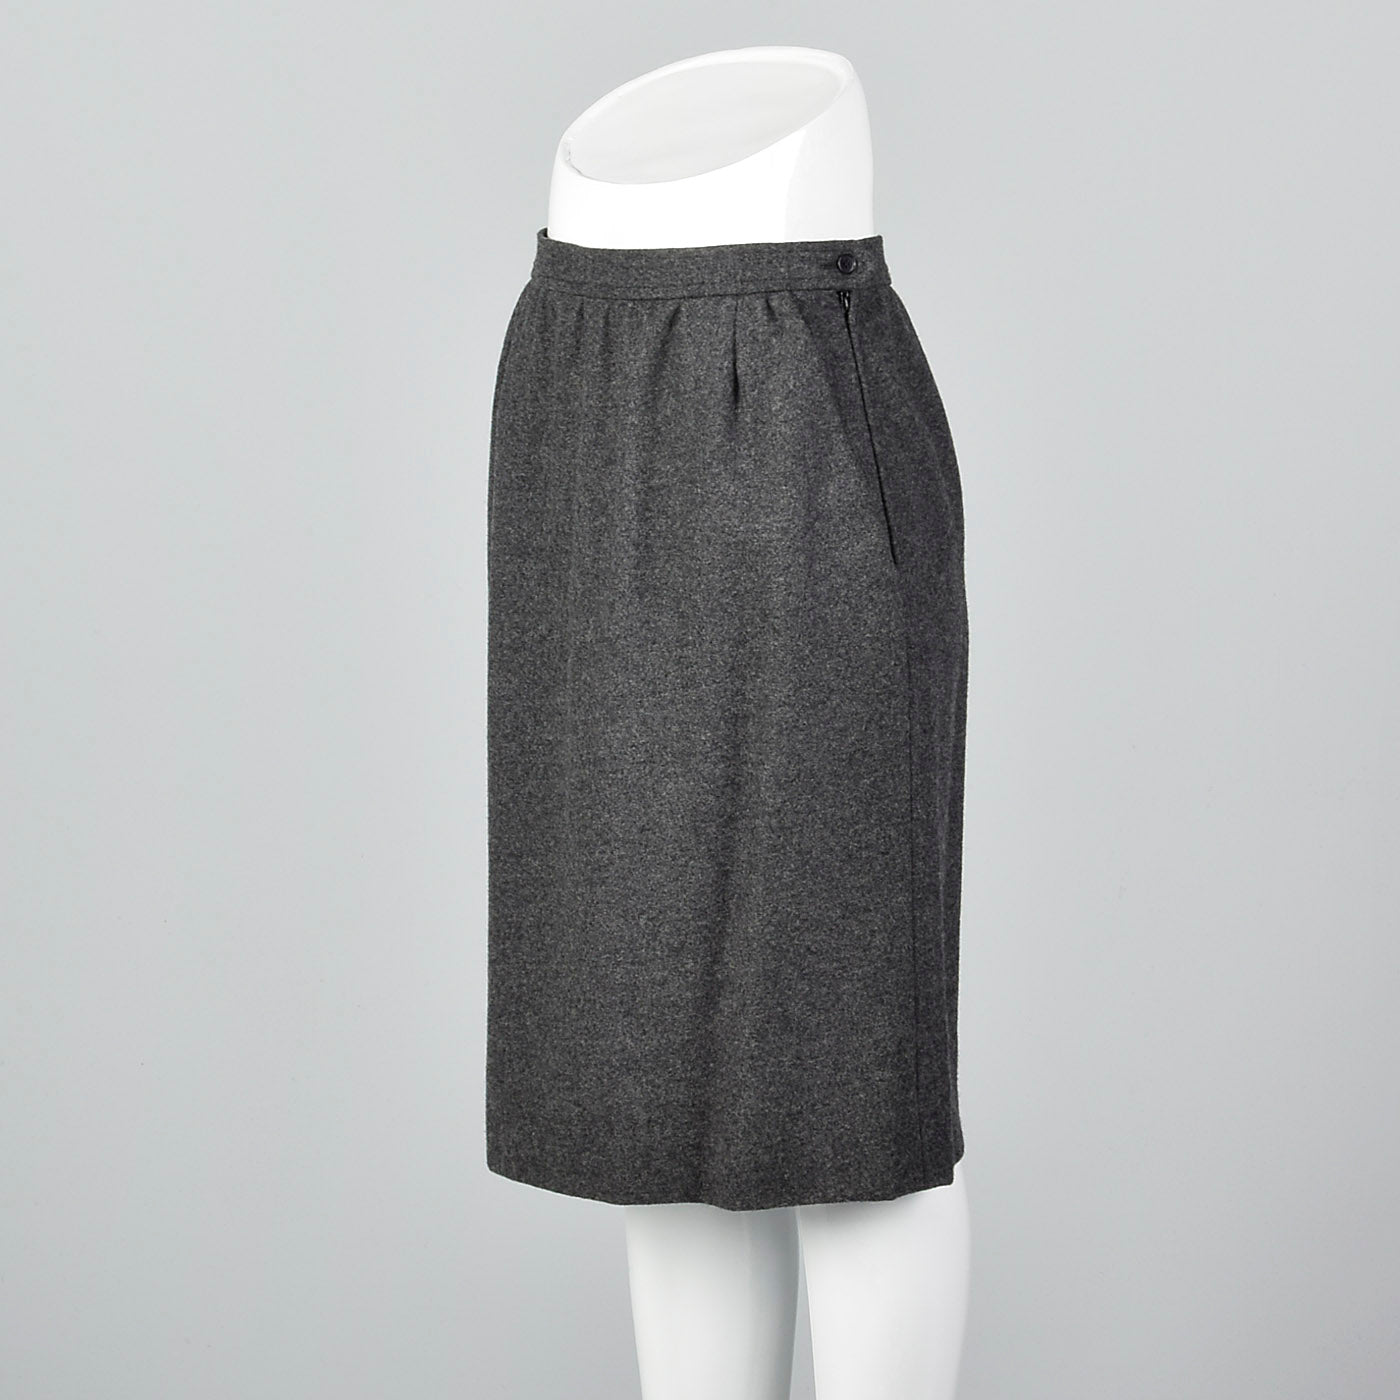 1970s Yves Saint Laurent Rive Gauche Gray Pencil Skirt with Pockets